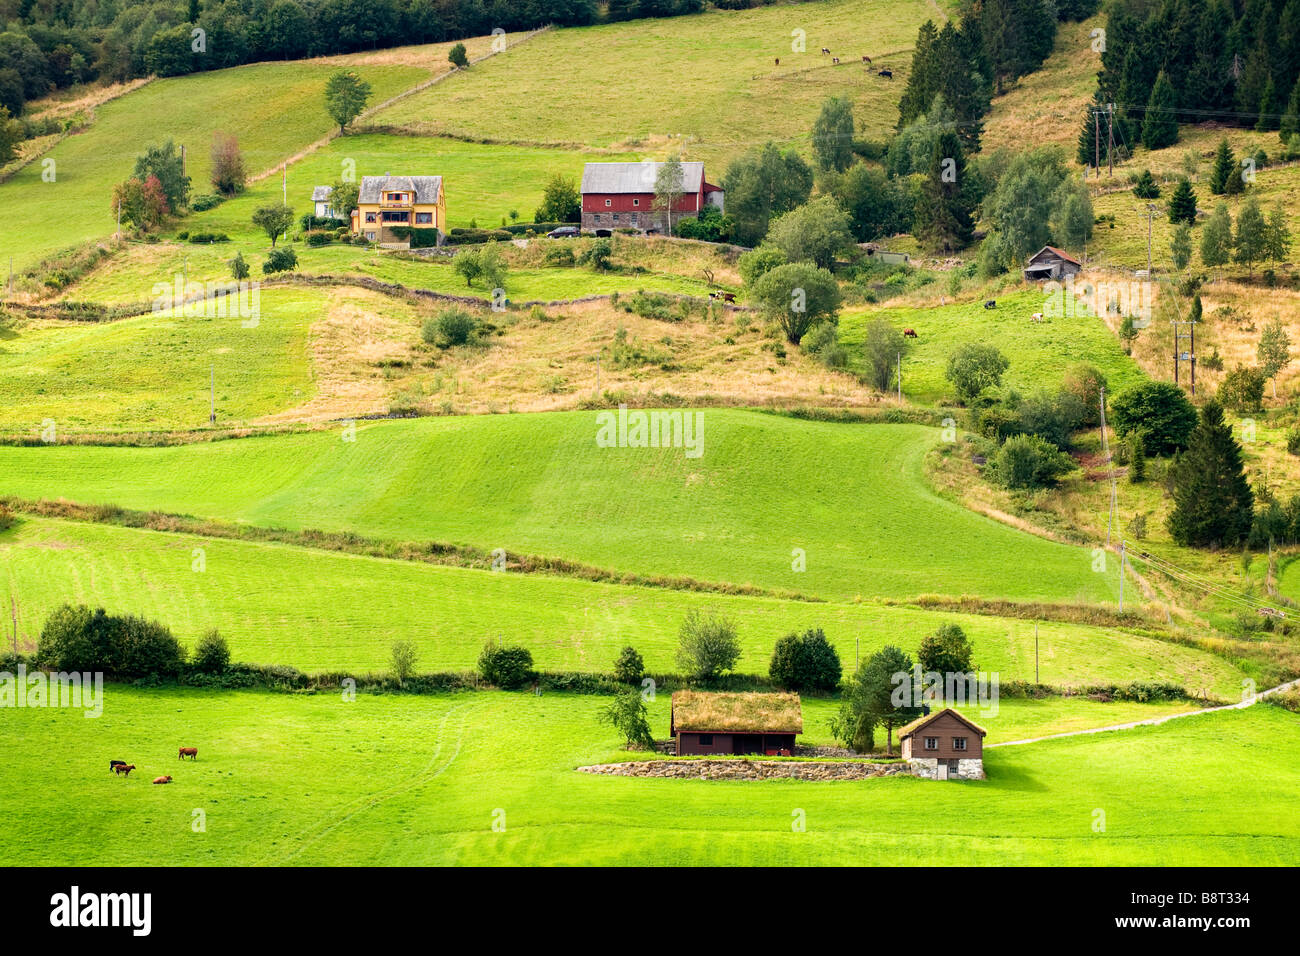 View of hills and farms near Olden, Norway - Stock Image